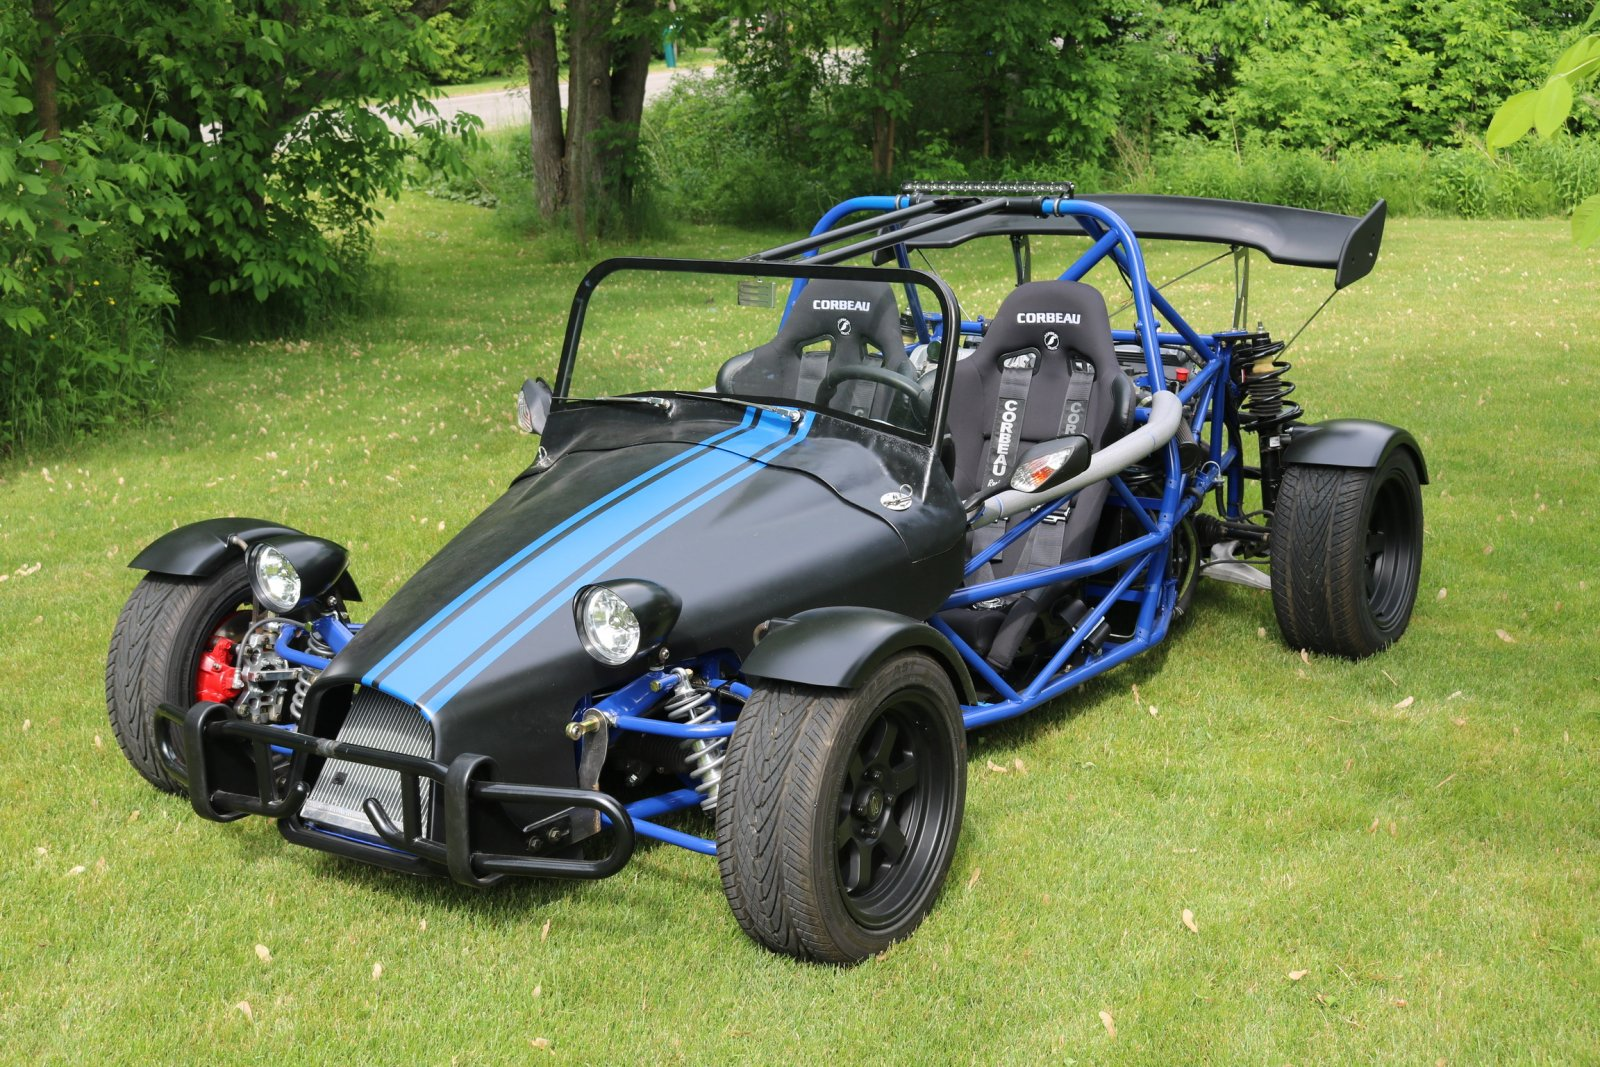 Df Kit Car >> Finished Goblin For Sale Page 2 Df Kit Car Forum